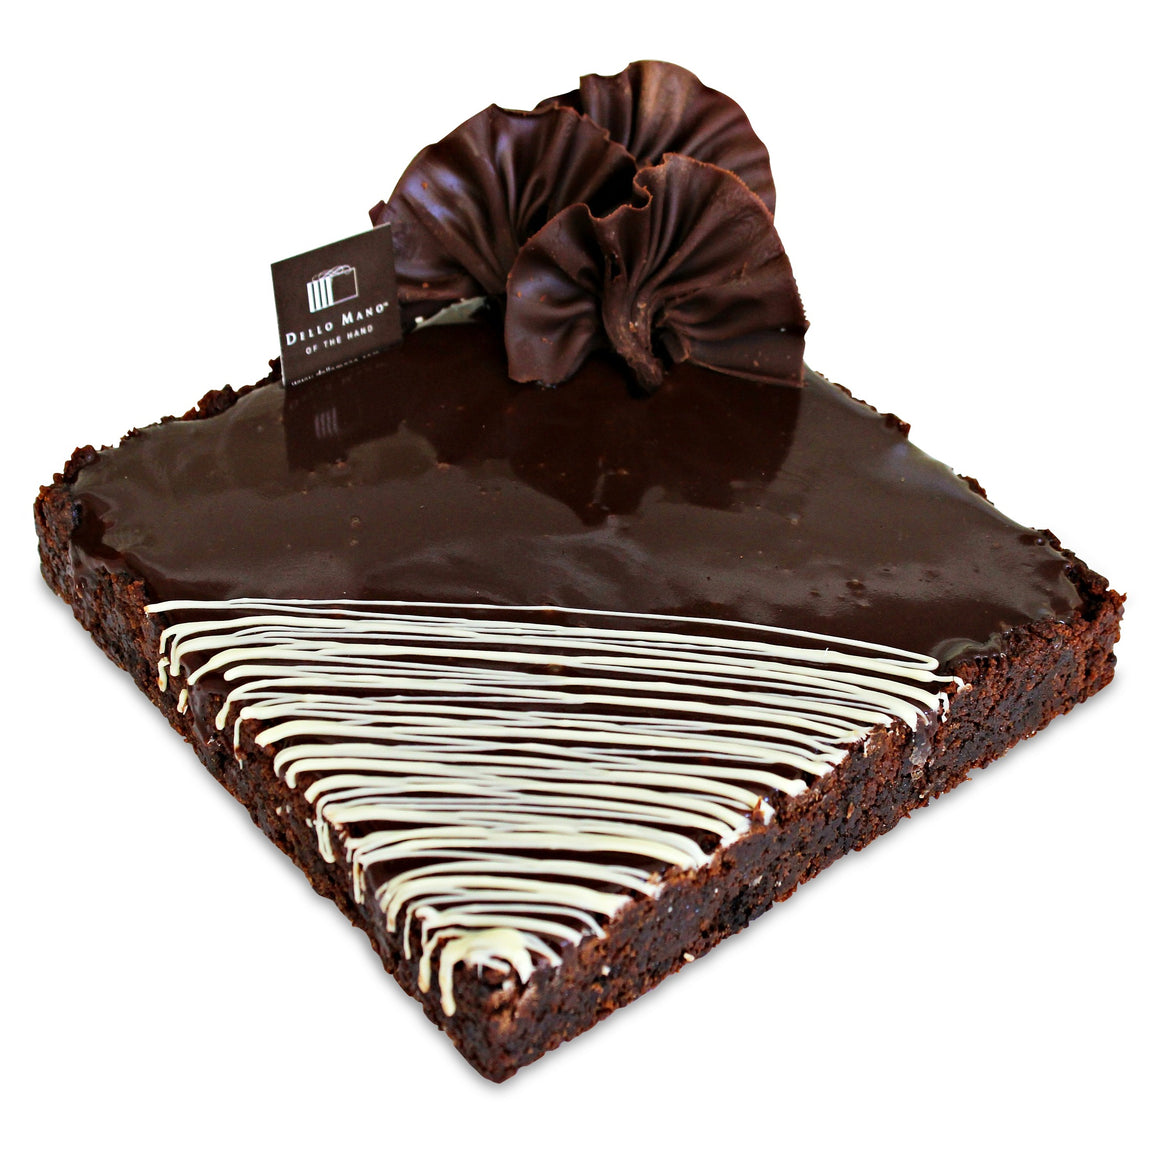 Luxury Brownie & Belgian Chocolate Ganache Tart - Dello Mano -2